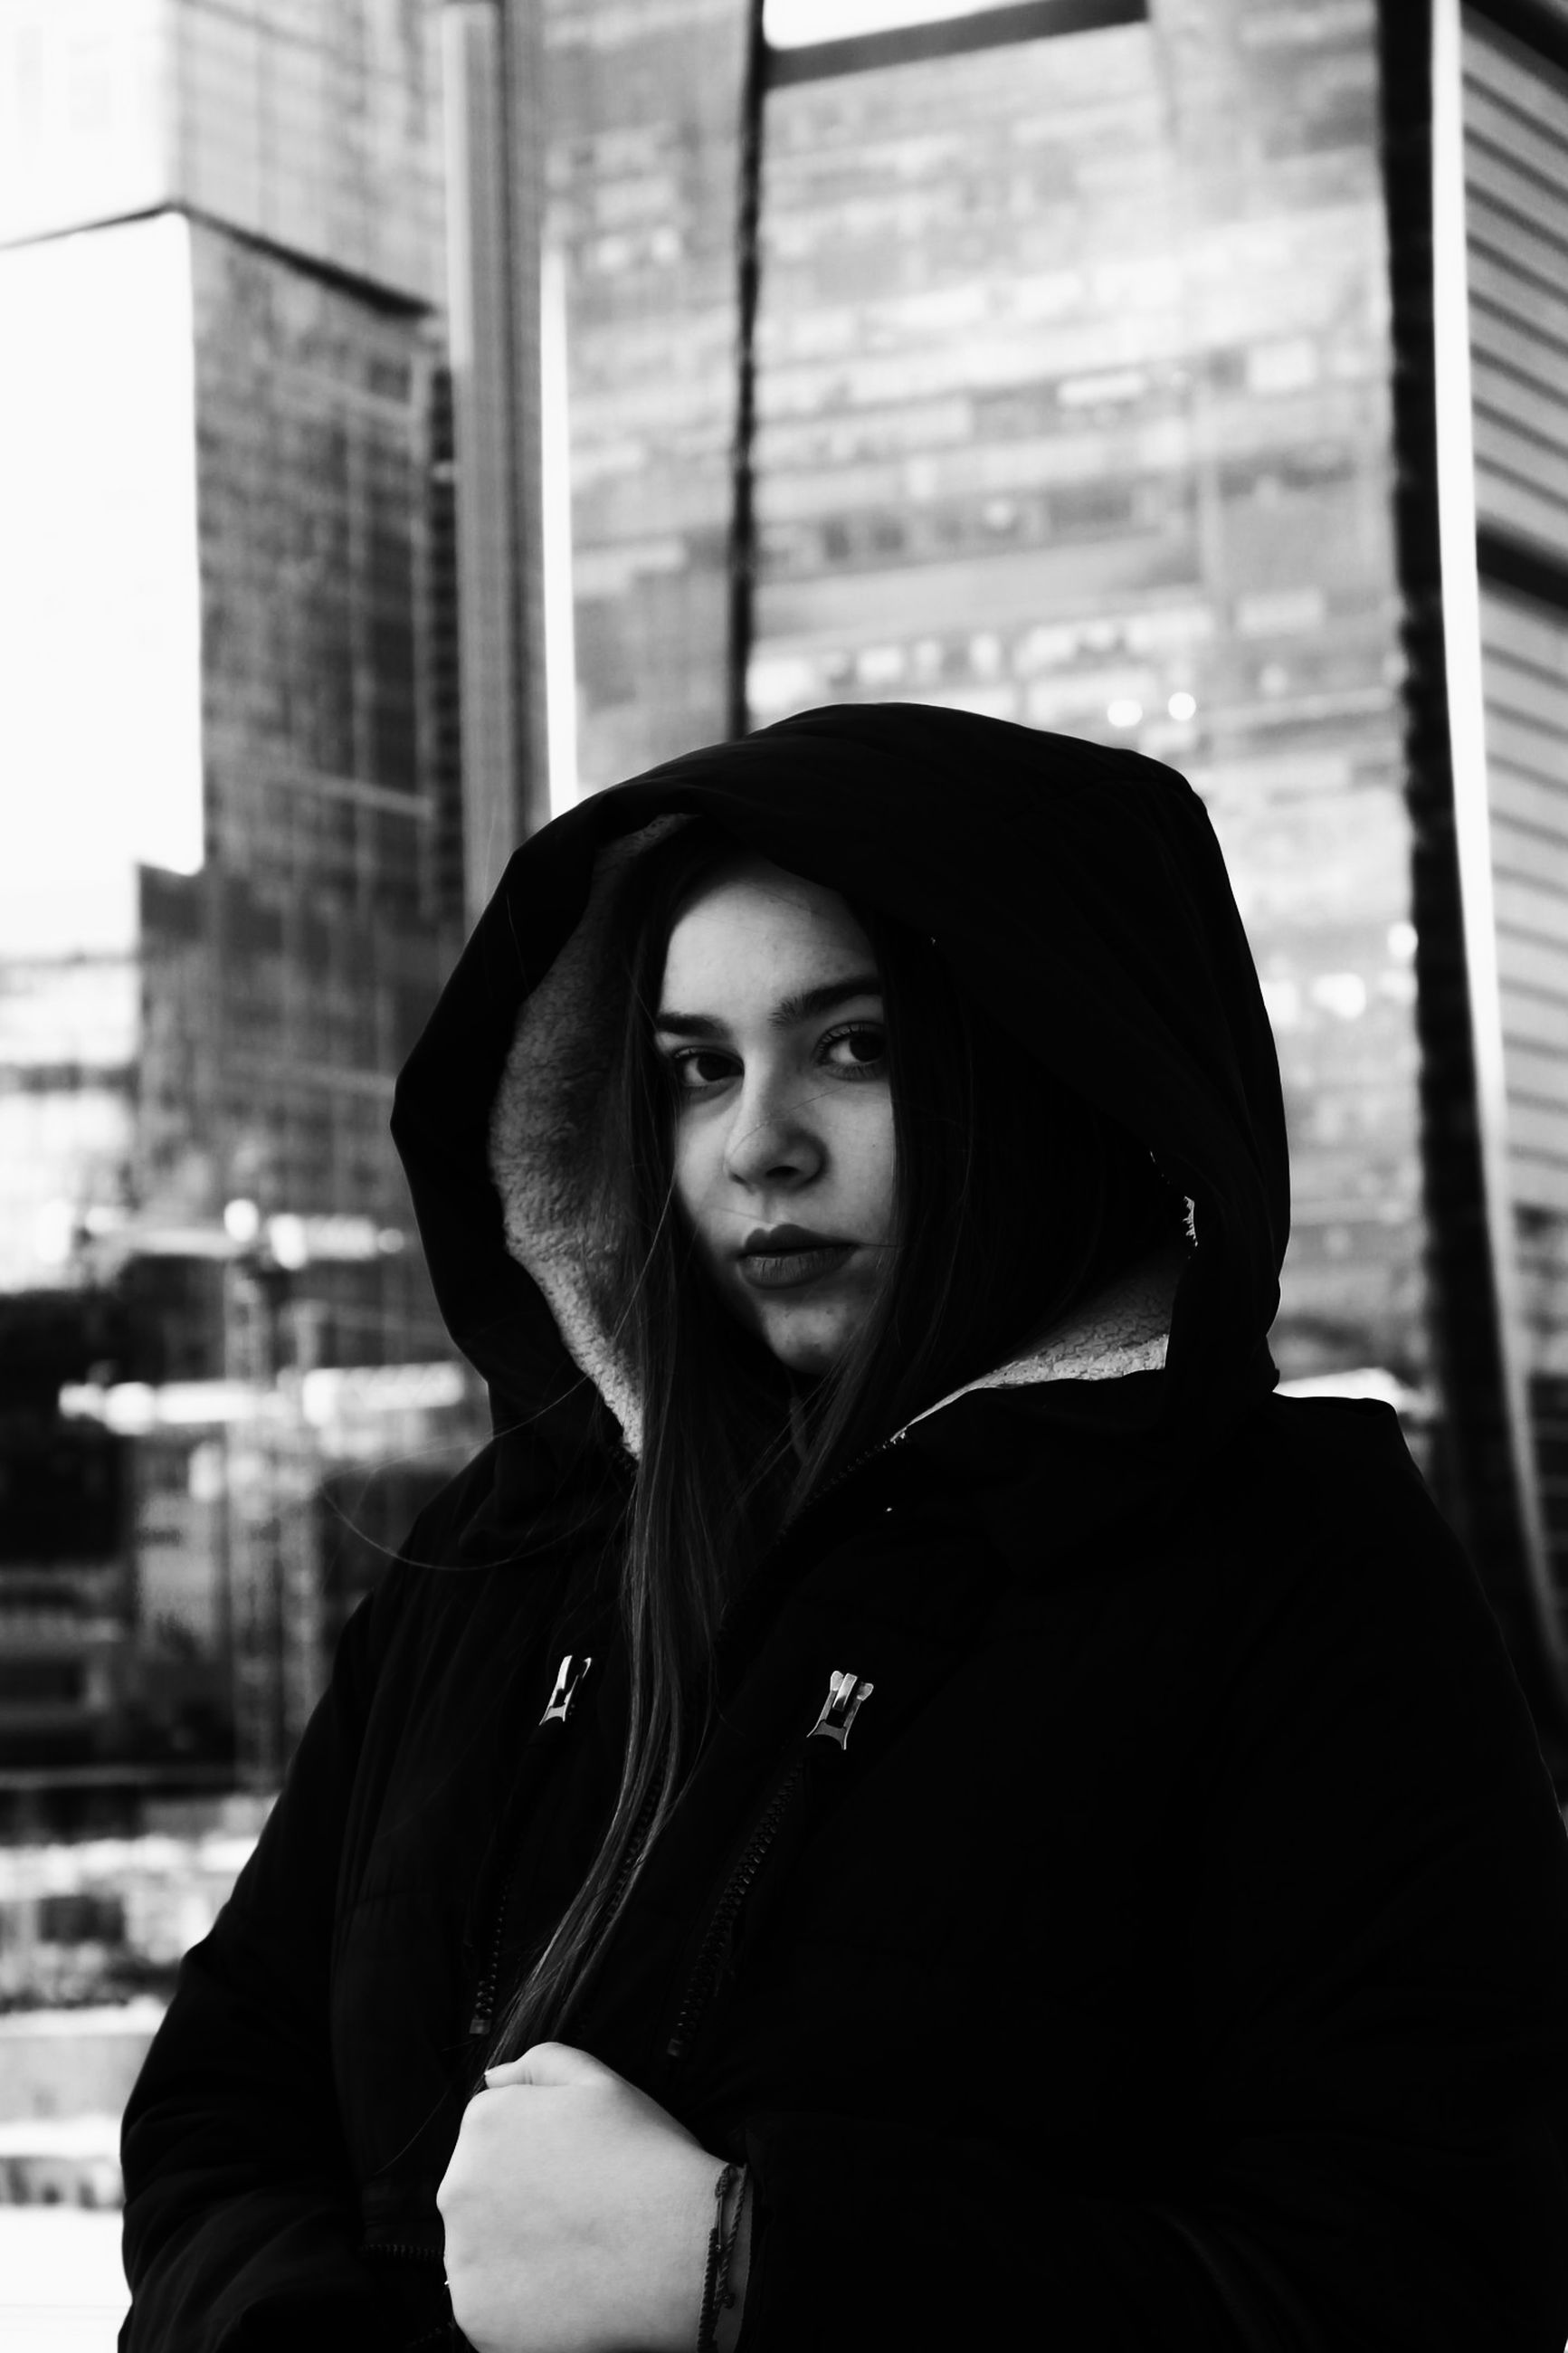 one person, real people, portrait, young women, lifestyles, young adult, built structure, leisure activity, beauty, building exterior, architecture, beautiful woman, hair, headshot, looking at camera, looking, women, casual clothing, hairstyle, hood - clothing, contemplation, teenager